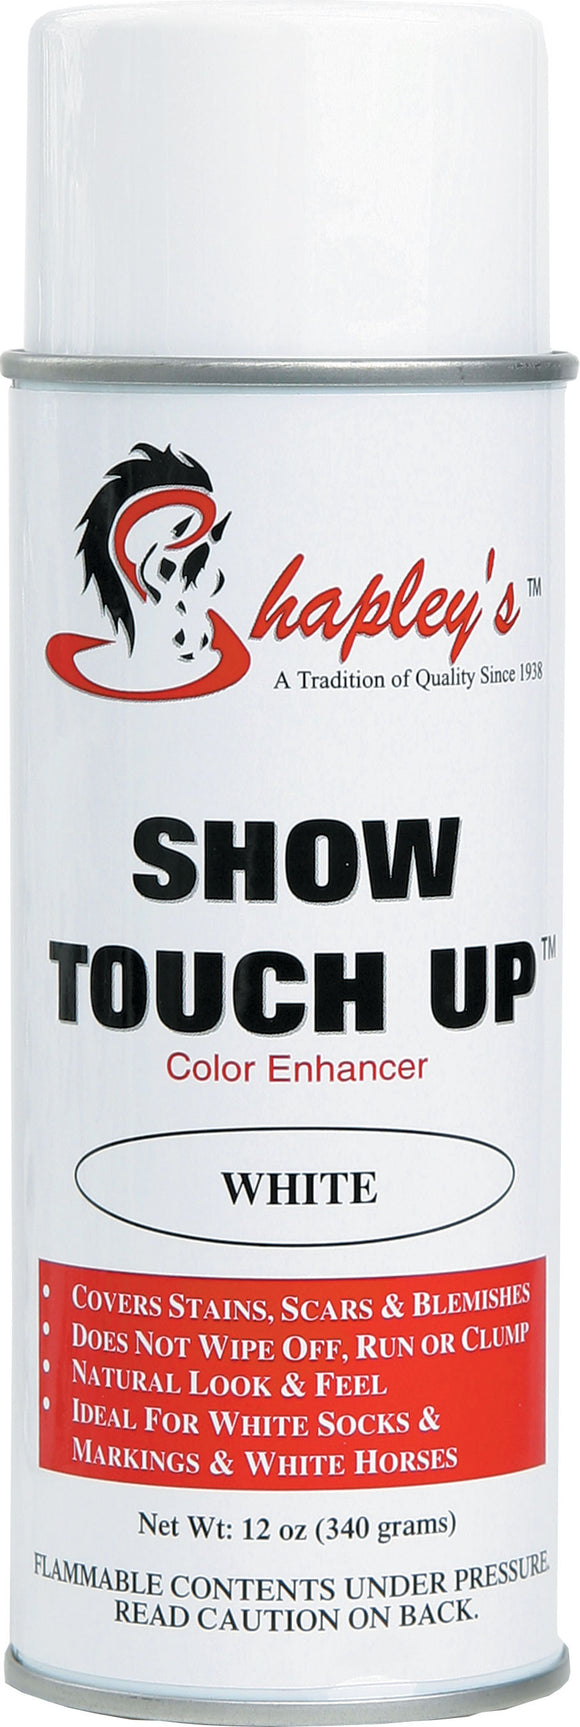 Shapley's - Show Touch Up Color Enhancer